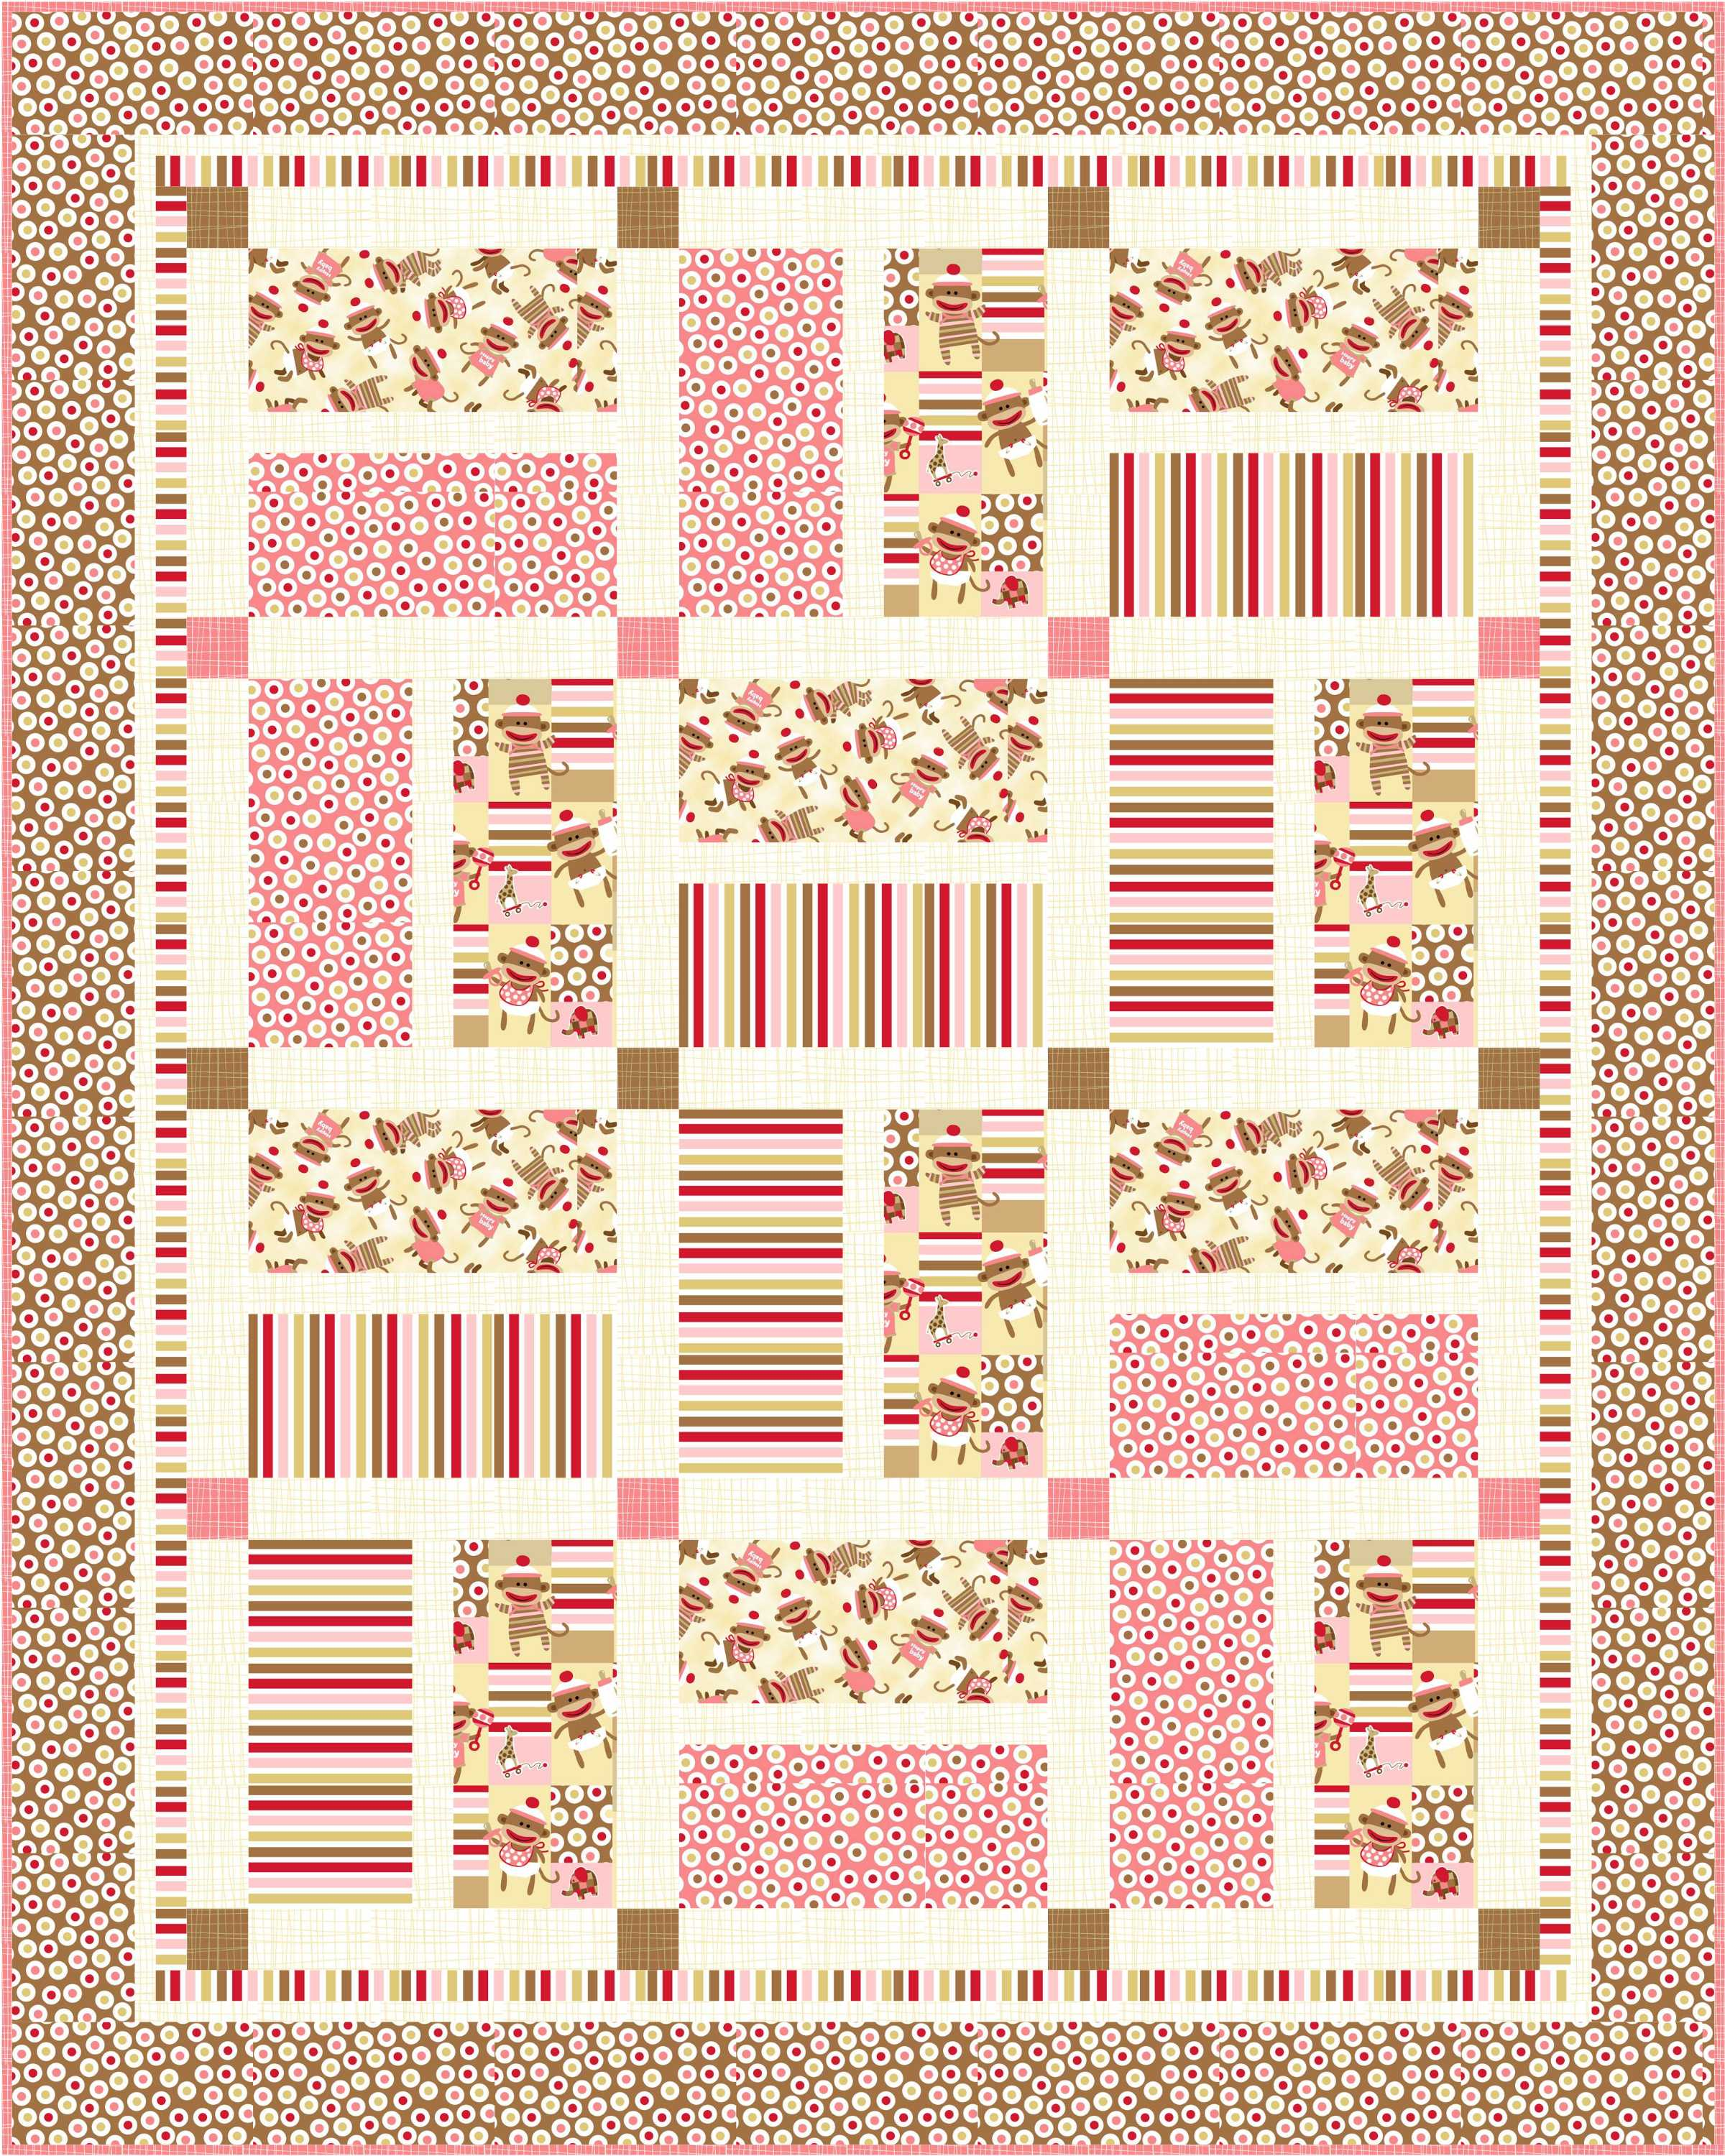 Baby Crib Quilt Patterns